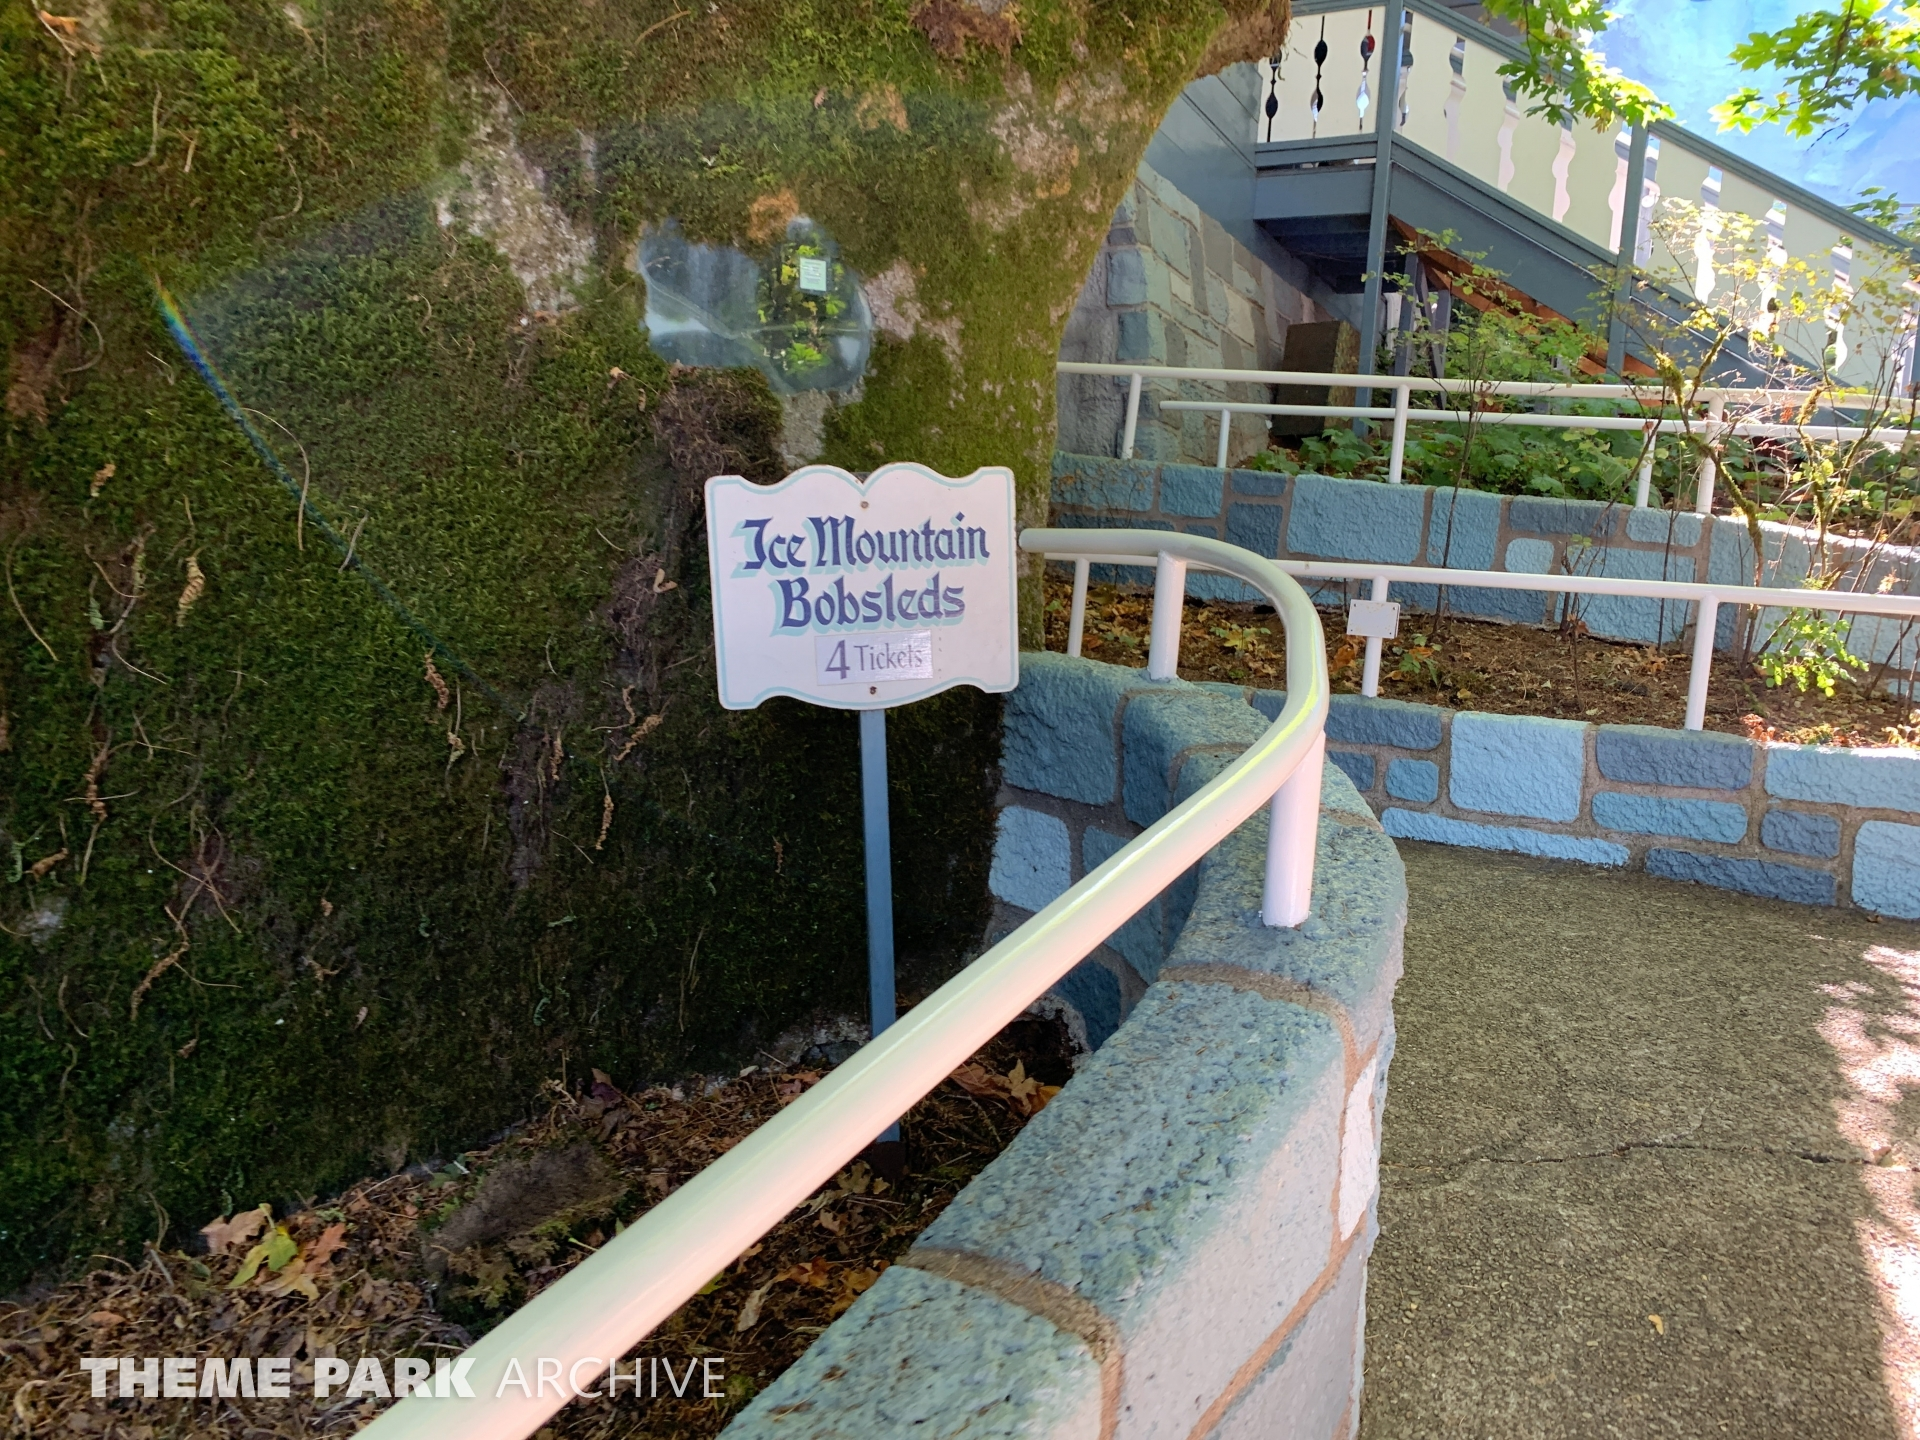 Ice Mountain Bobsled Roller Coaster at Enchanted Forest